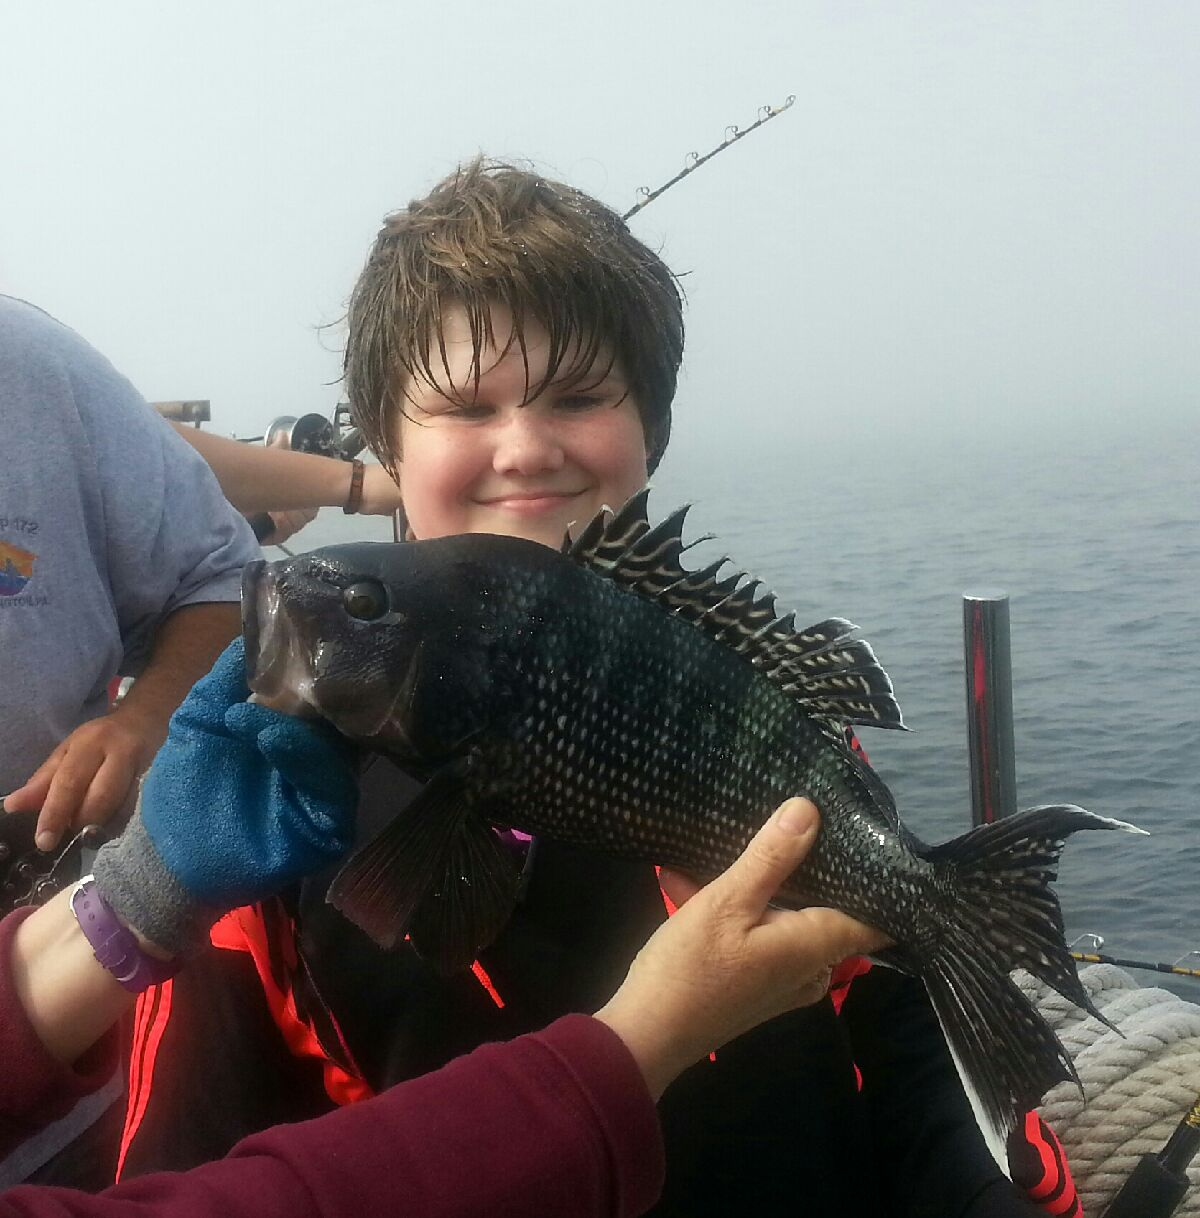 Southern new jersey fishing report june 18 2015 on for New jersey fishing reports